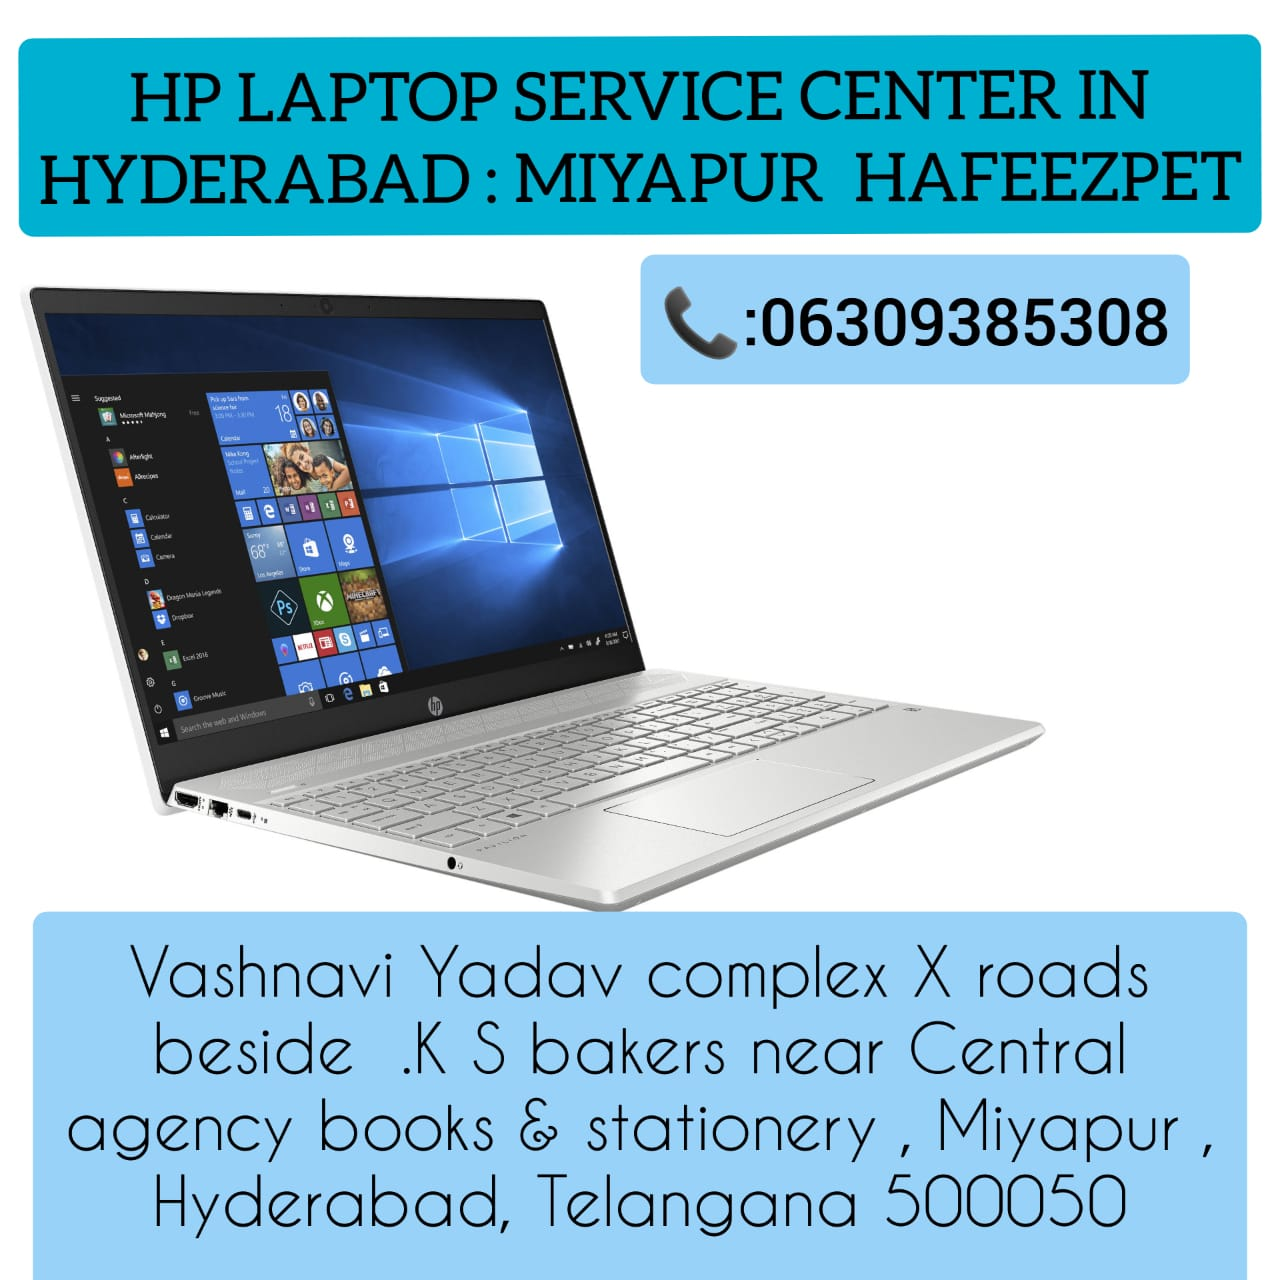 Hp Laptop Service Center In Hyderabad Miyapur In Hyderabad